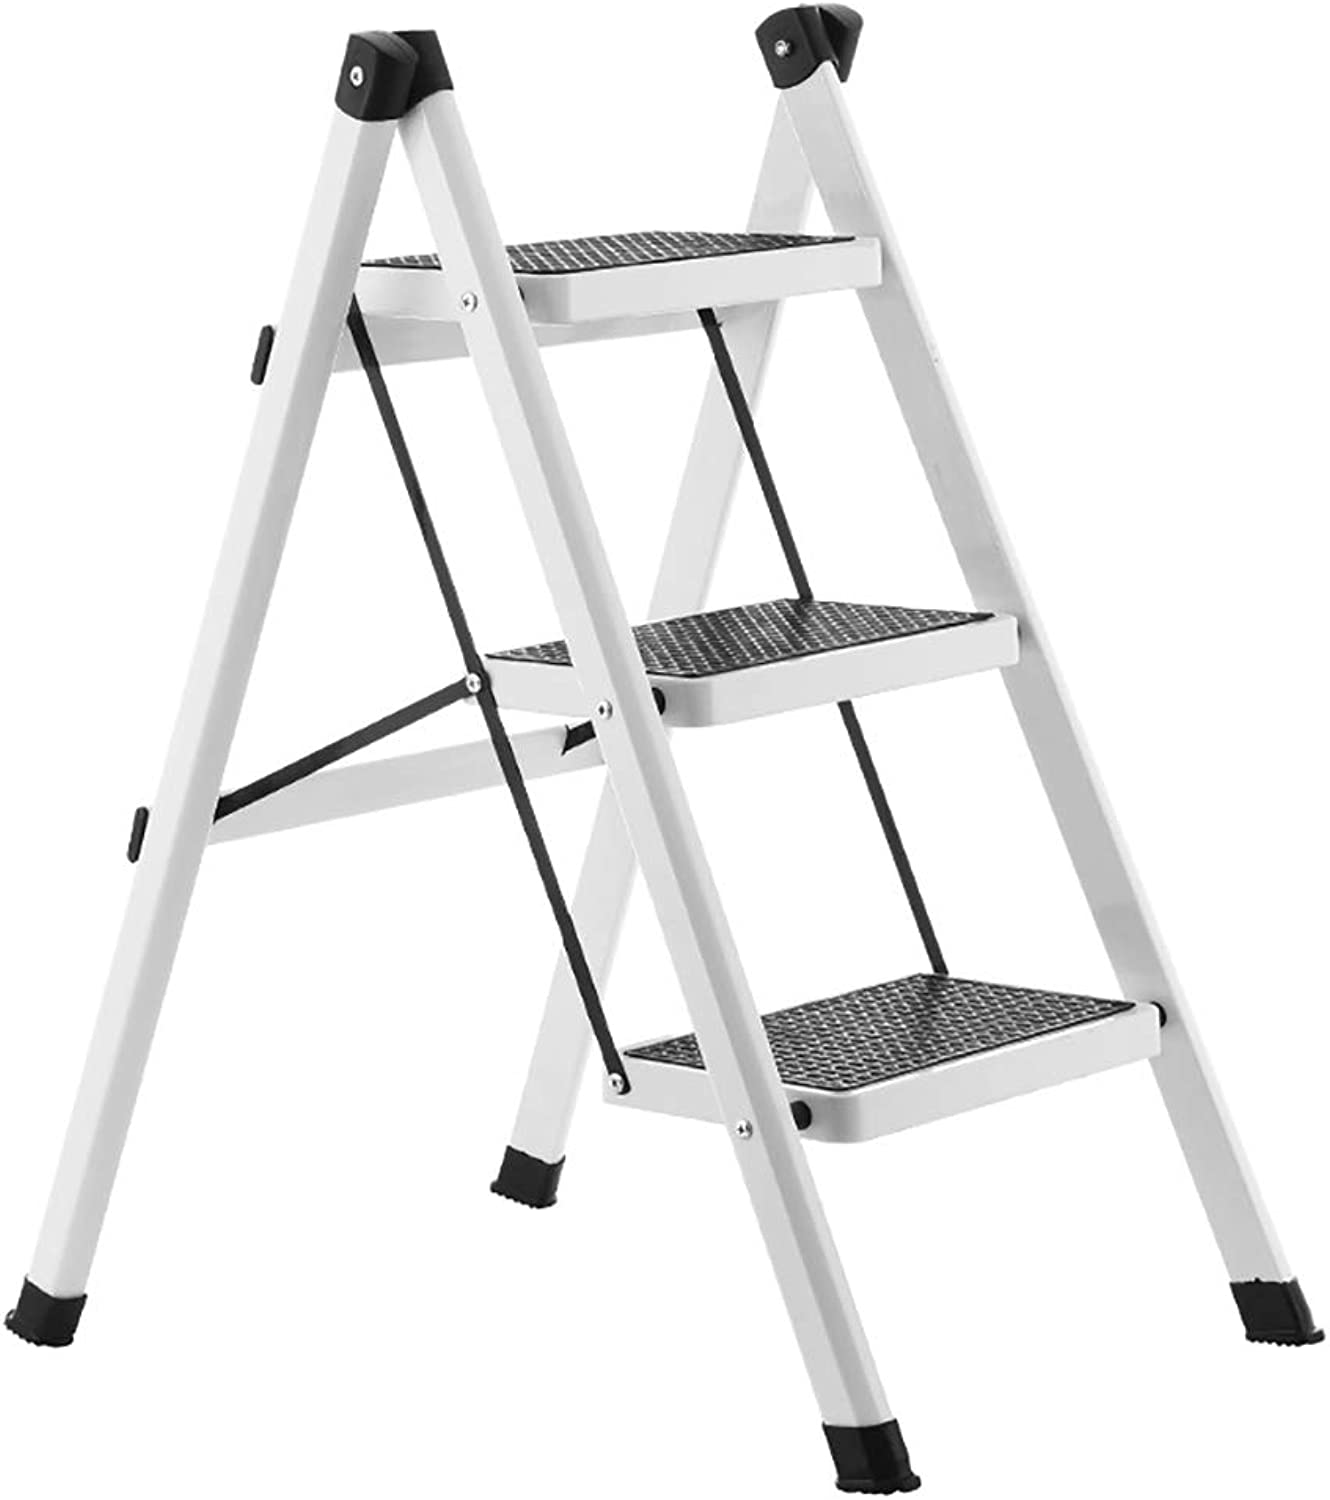 LXJYMX Home Folding Ladder, Iron Insulated Ladder, Multi-Purpose Ladder, Portable Unilateral Ladder. Climbing Ladder (color   White)